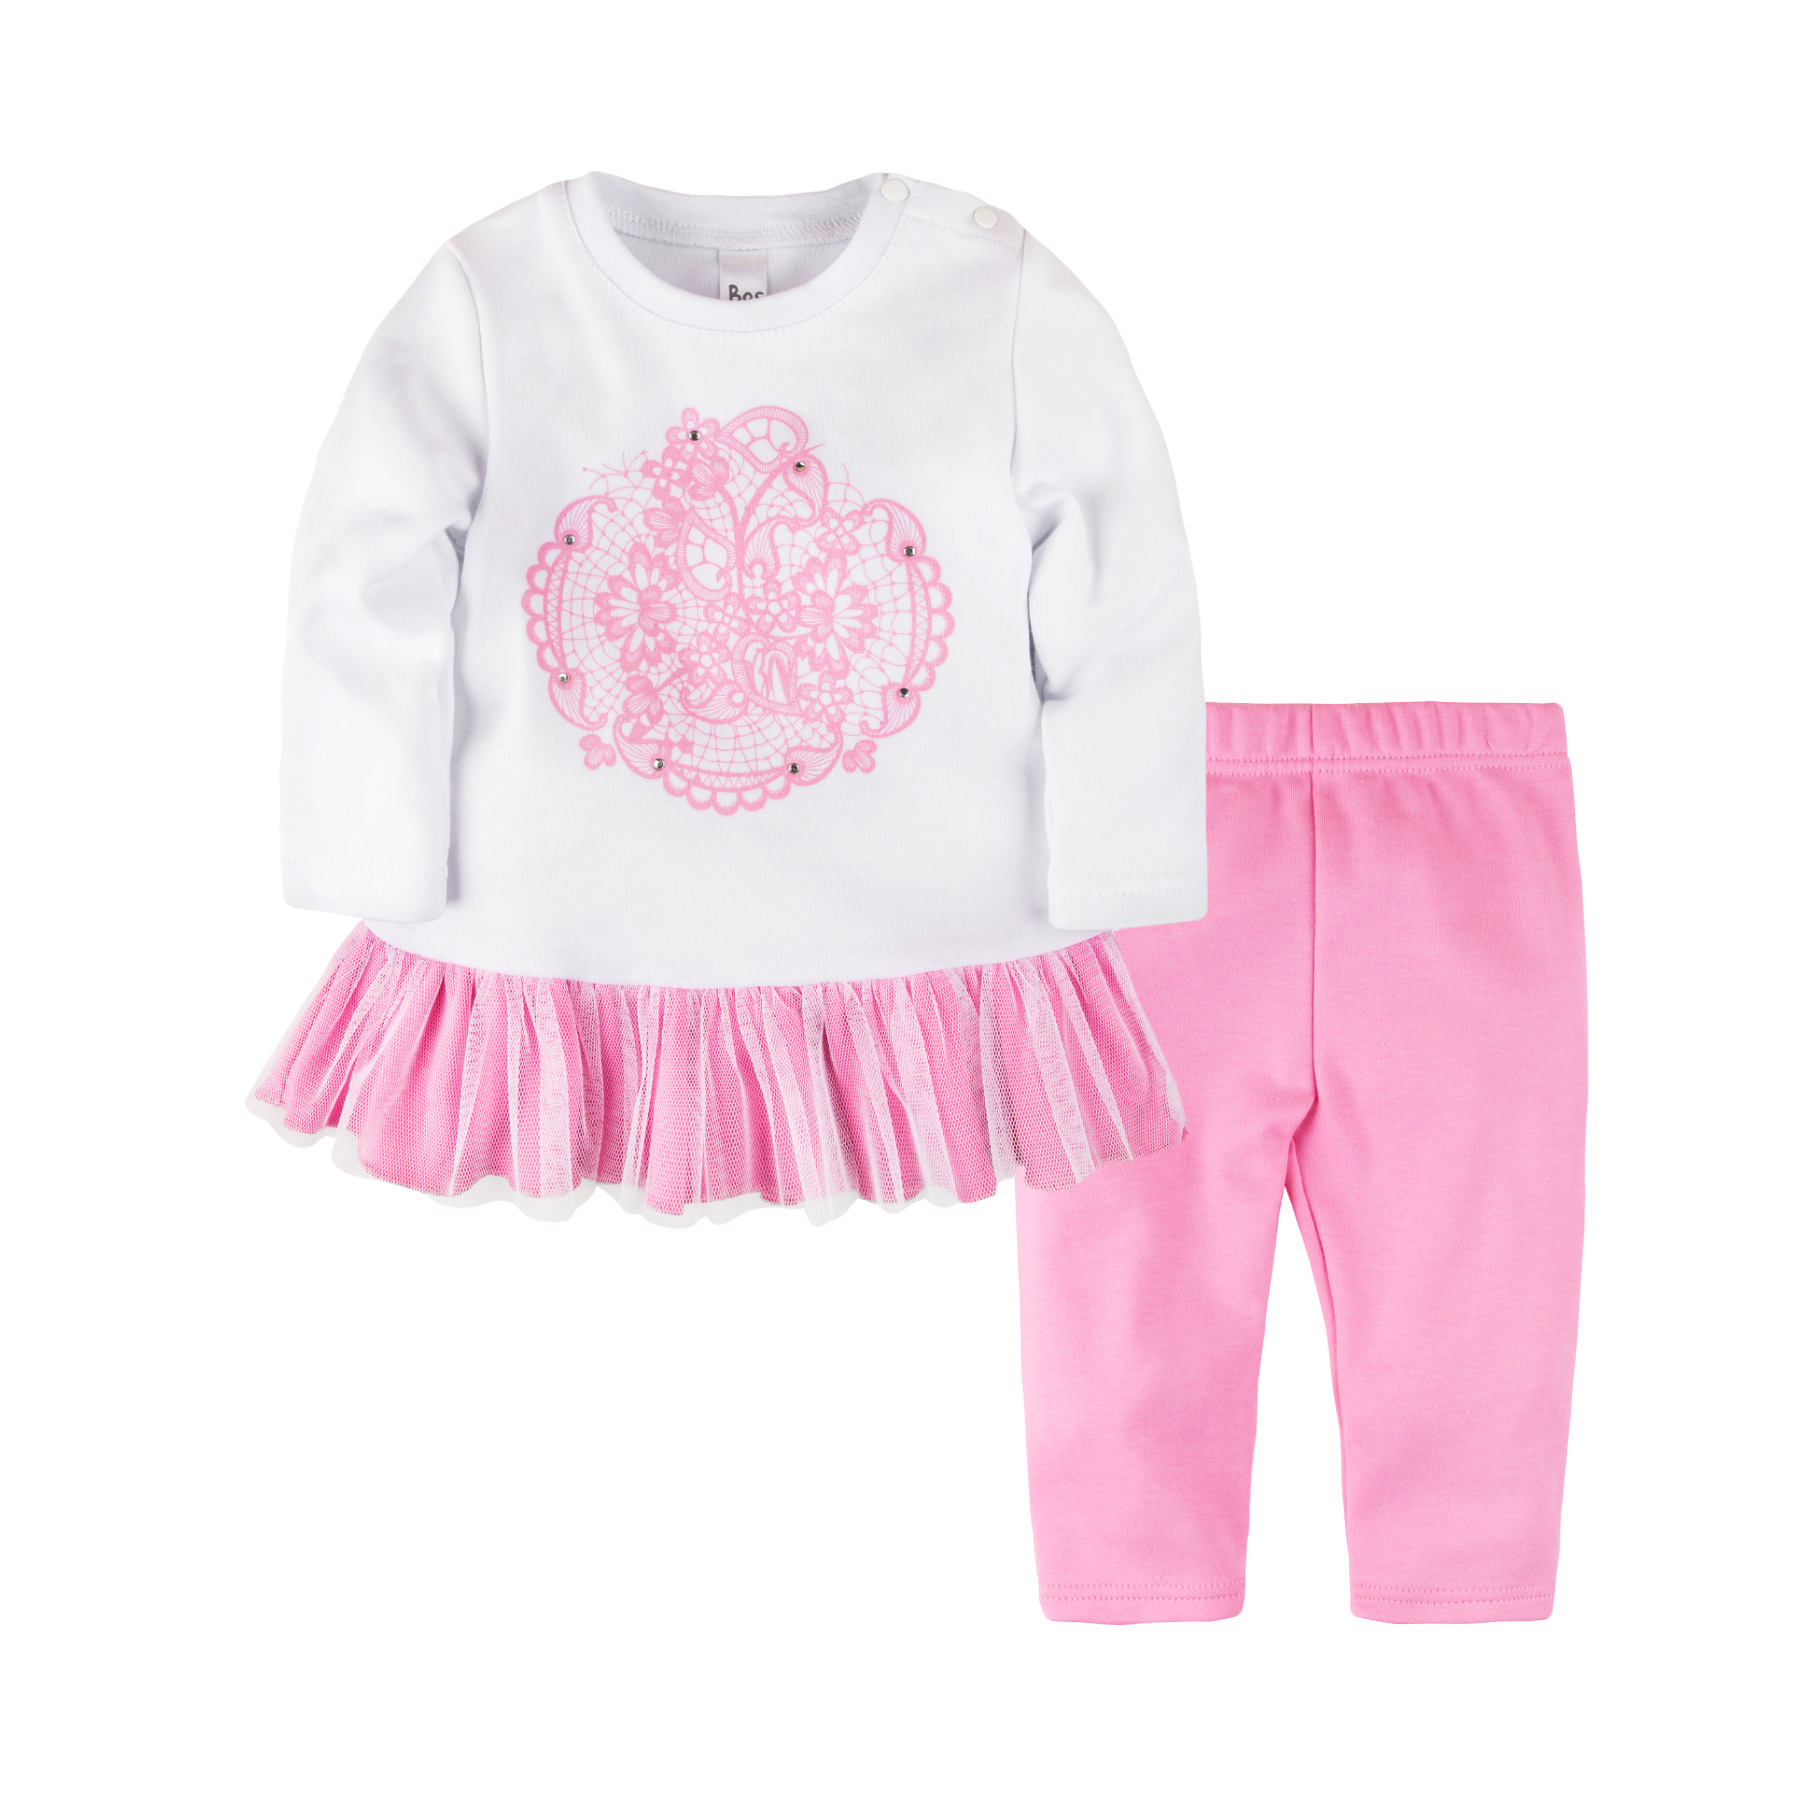 Baby's Set of tunic + leggings for girls BOSSA NOVA 085B-351 rexroth roller rail systems r1805 351 31 620mm